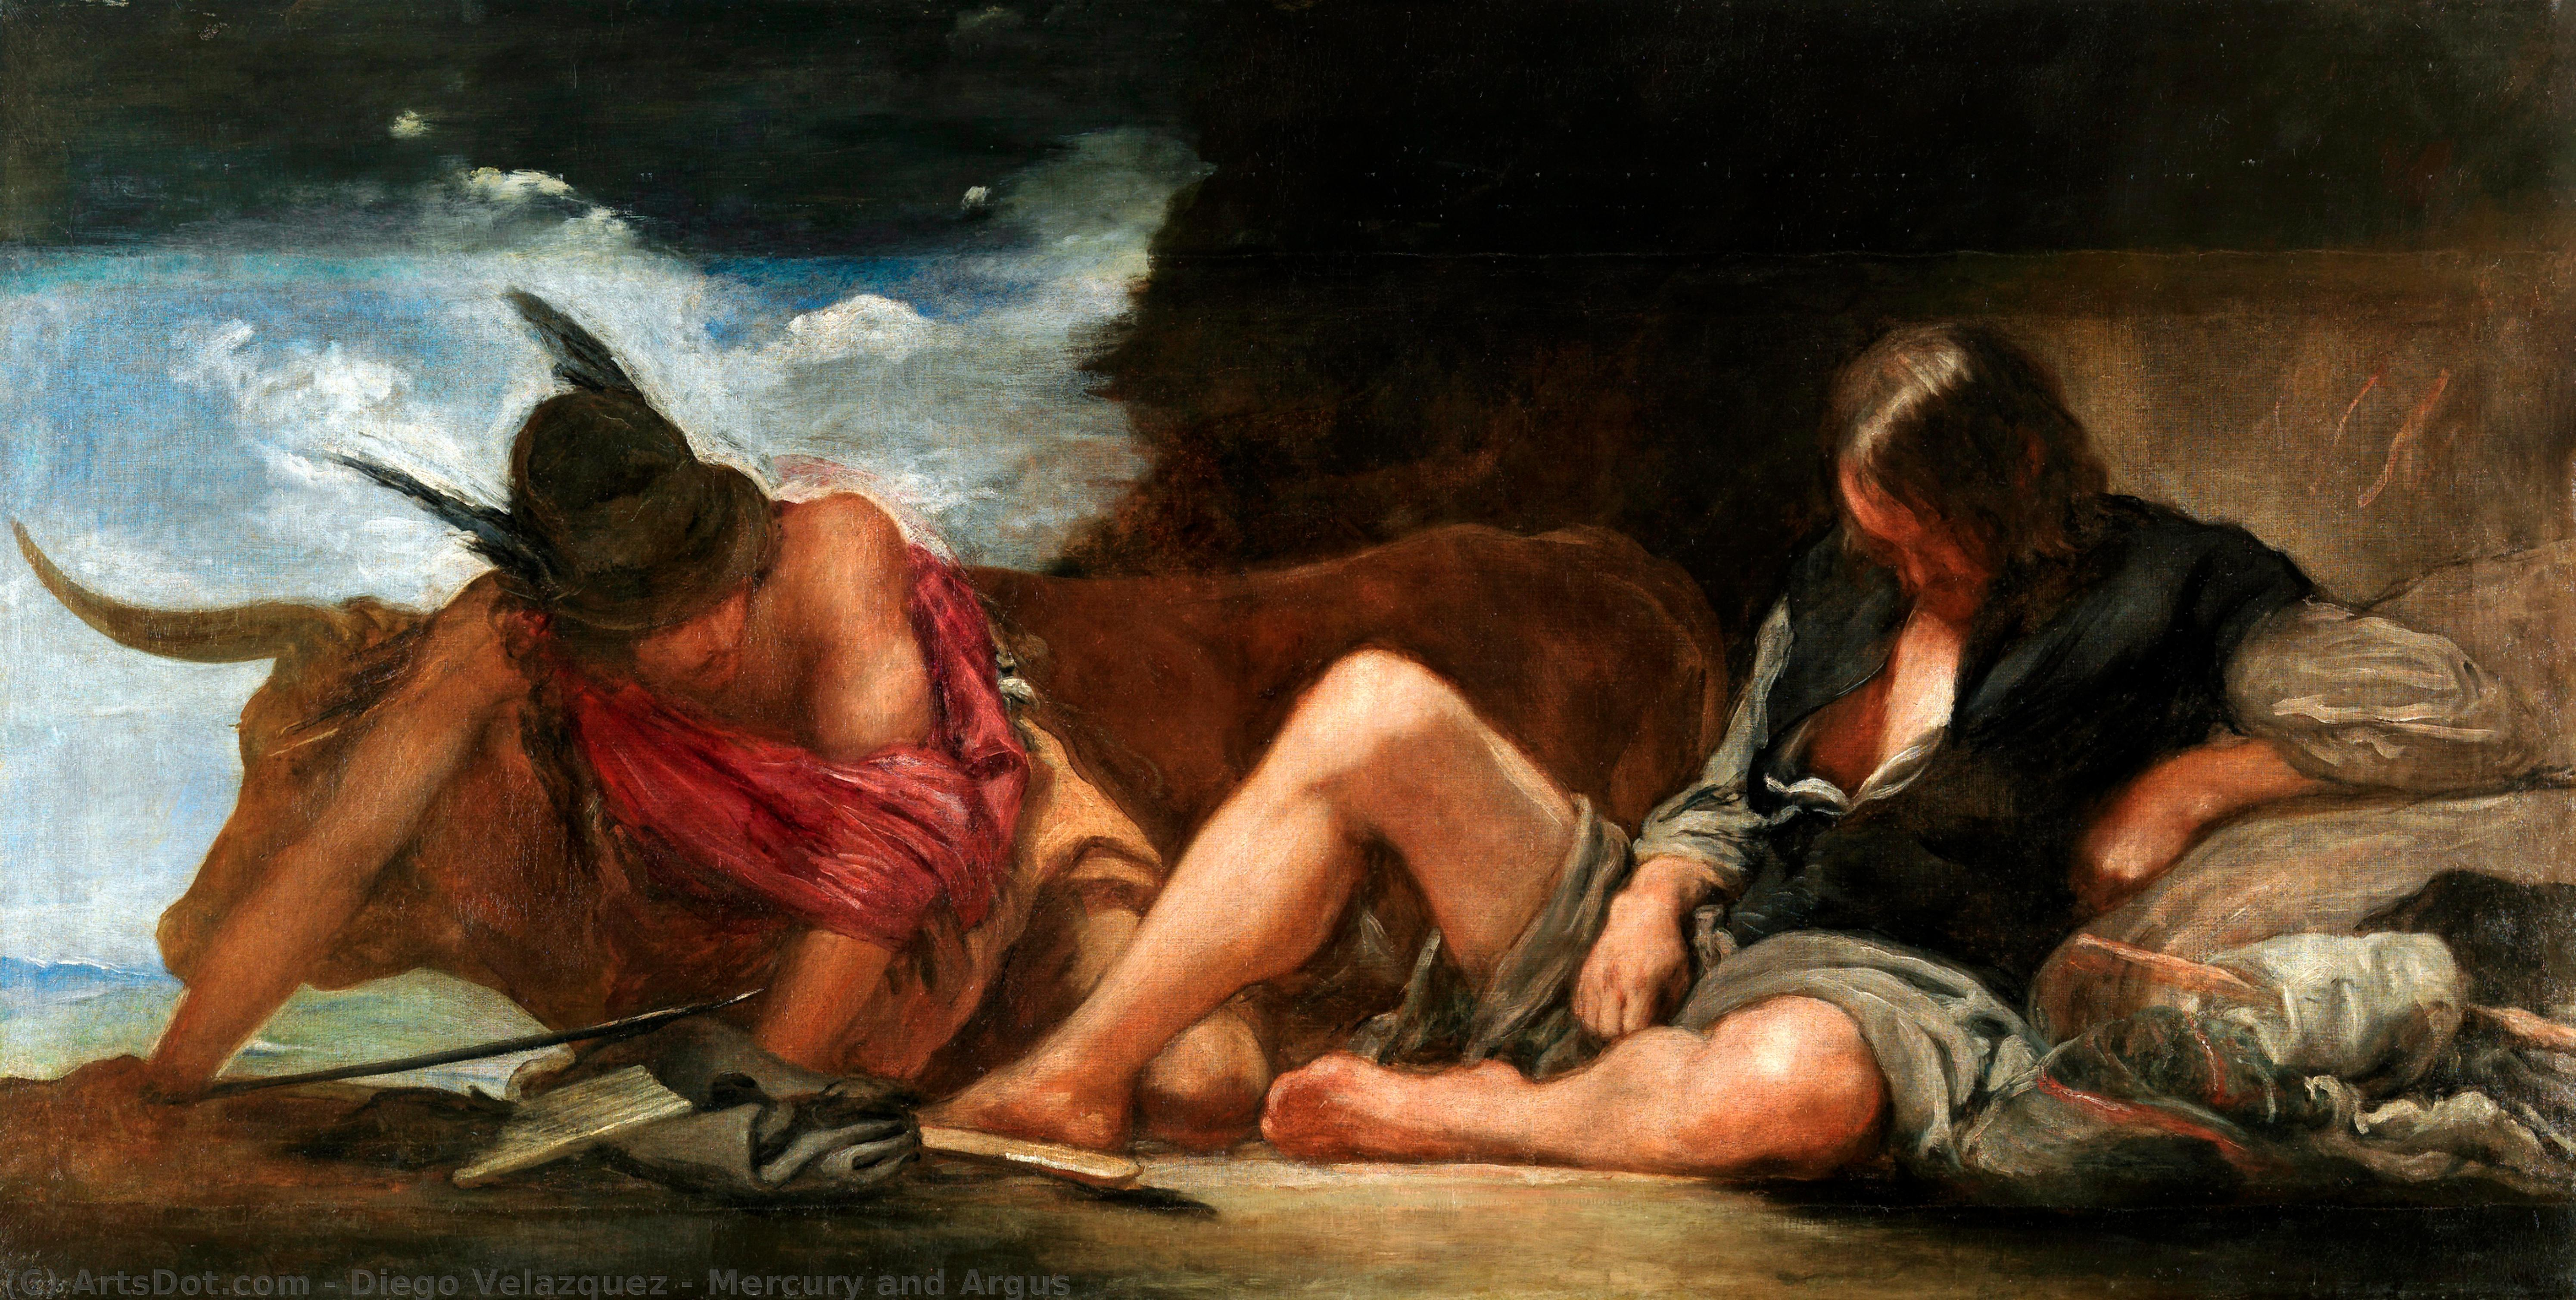 Wikioo.org - The Encyclopedia of Fine Arts - Painting, Artwork by Diego Velazquez - Mercury and Argus